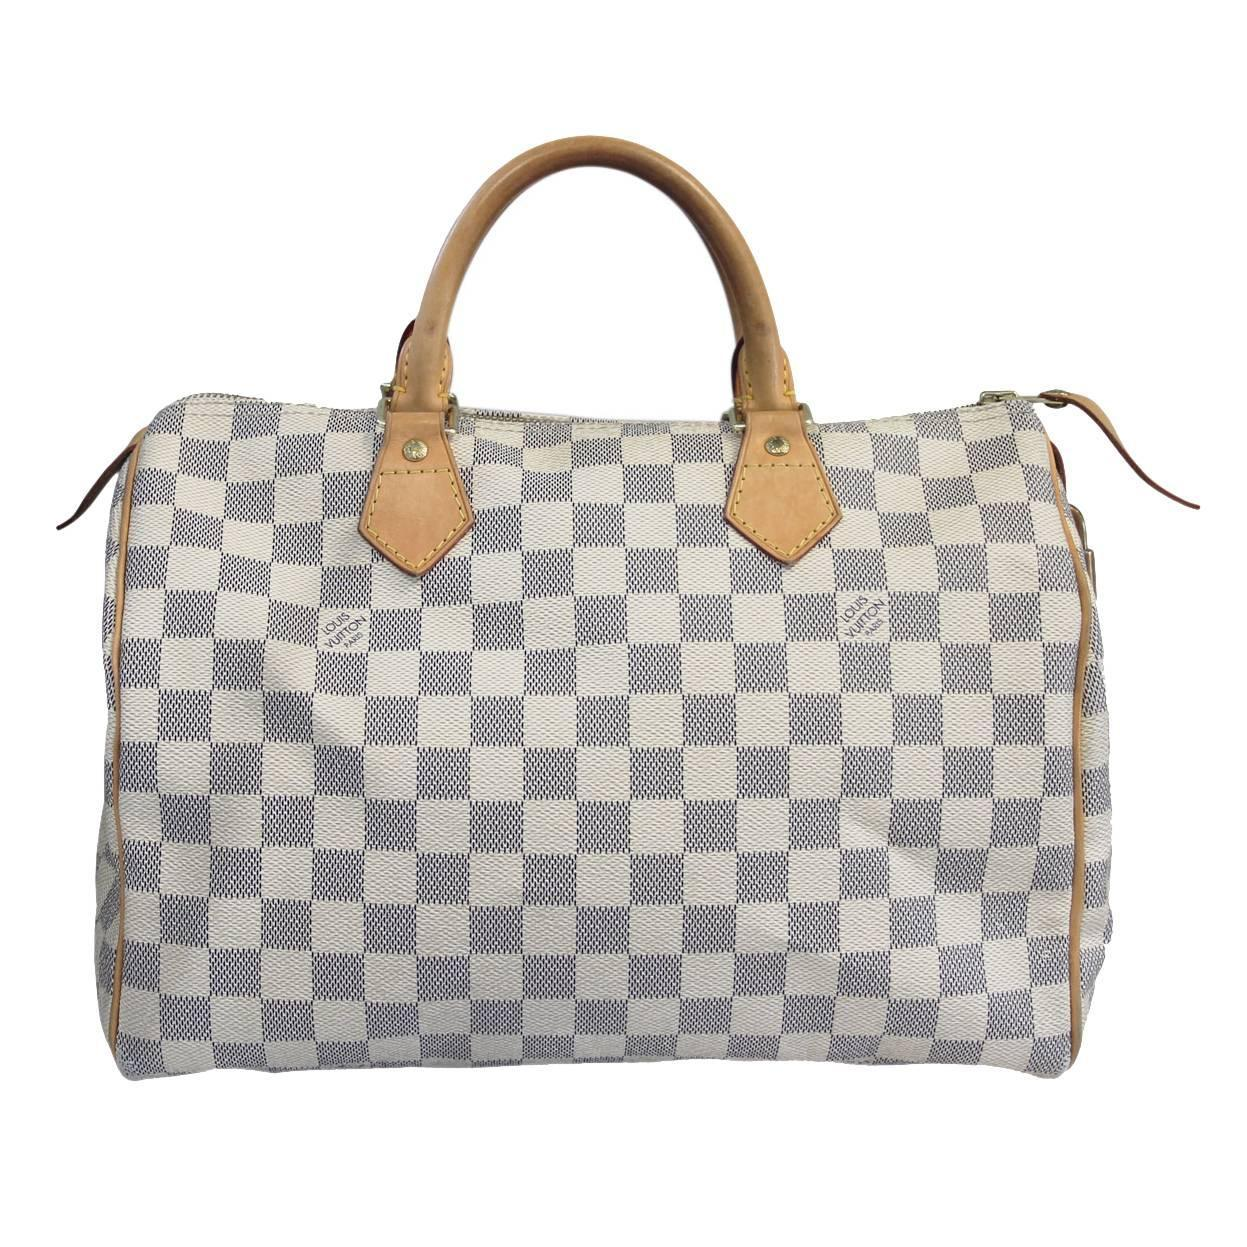 5cfe7517808f Louis Vuitton Damier Azur Speedy 30 Handbag in Dust Bag at 1stdibs